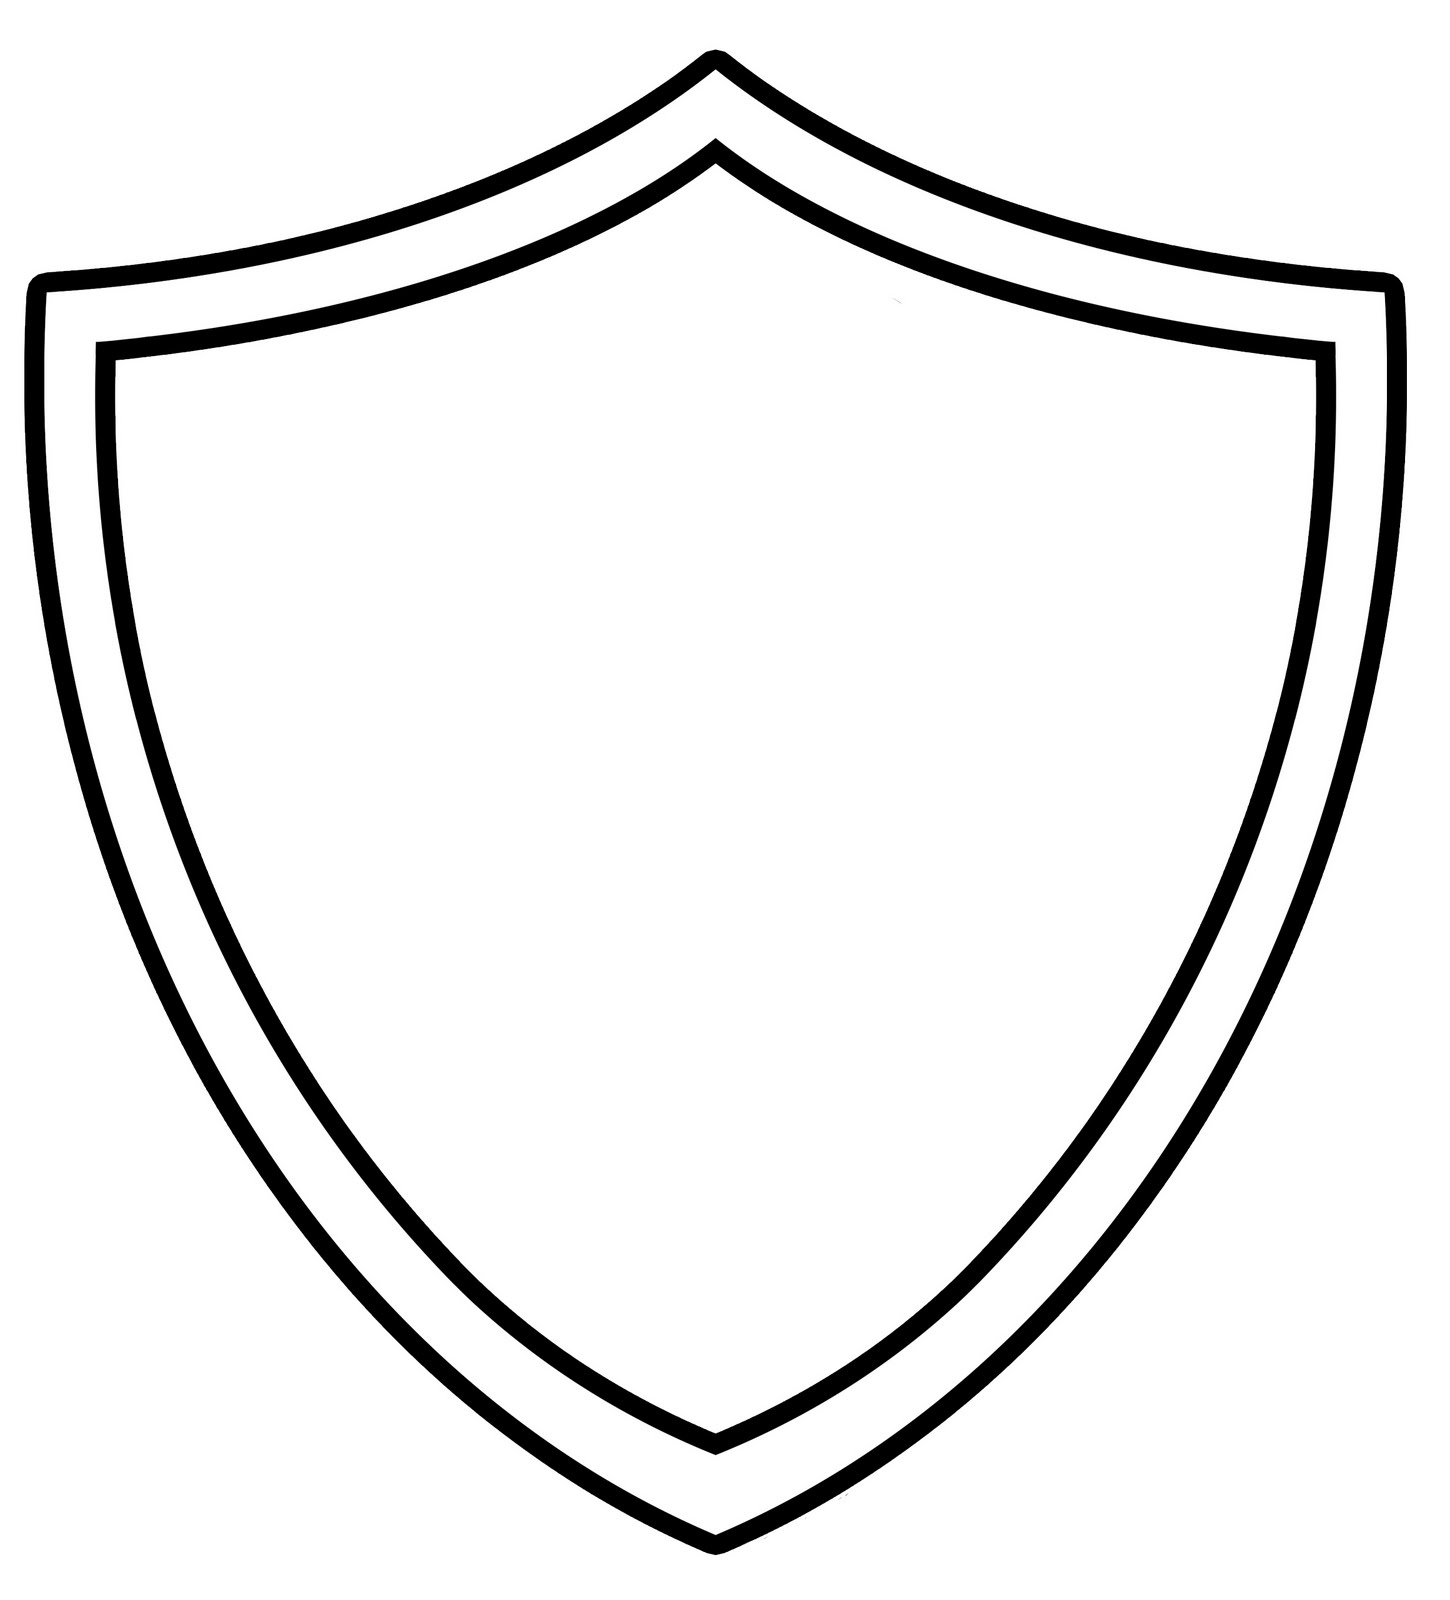 ctr shield free images at vector clip art online royalty free public domain. Black Bedroom Furniture Sets. Home Design Ideas